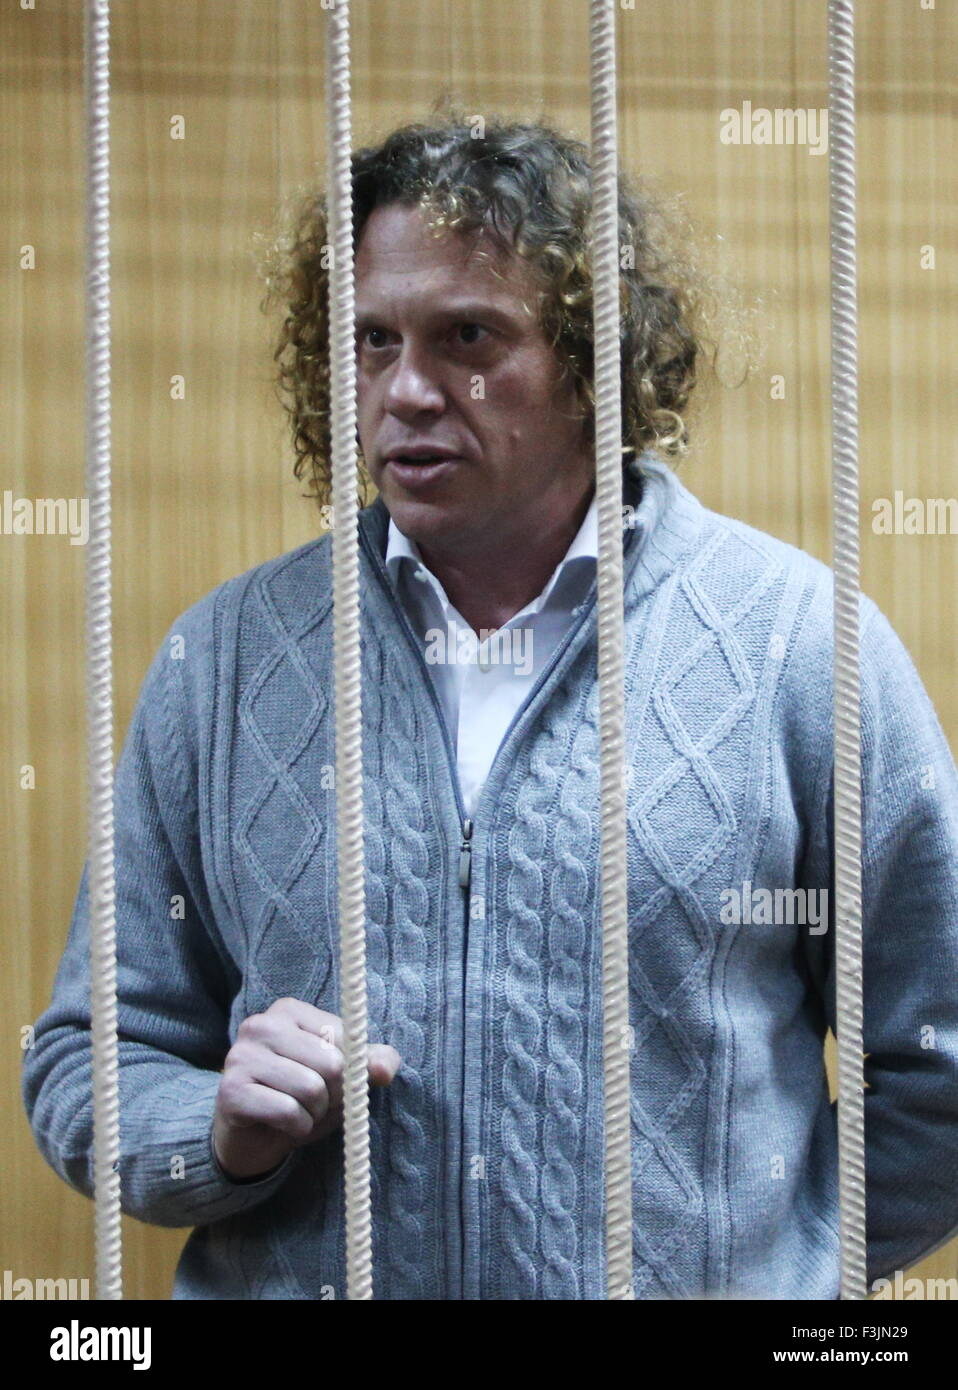 MOSCOW, RUSSIA. OCTOBER 8, 2015. Russian tycoon Sergei Polonsky, charged with large scale fraud, appears at a hearing - Stock Image